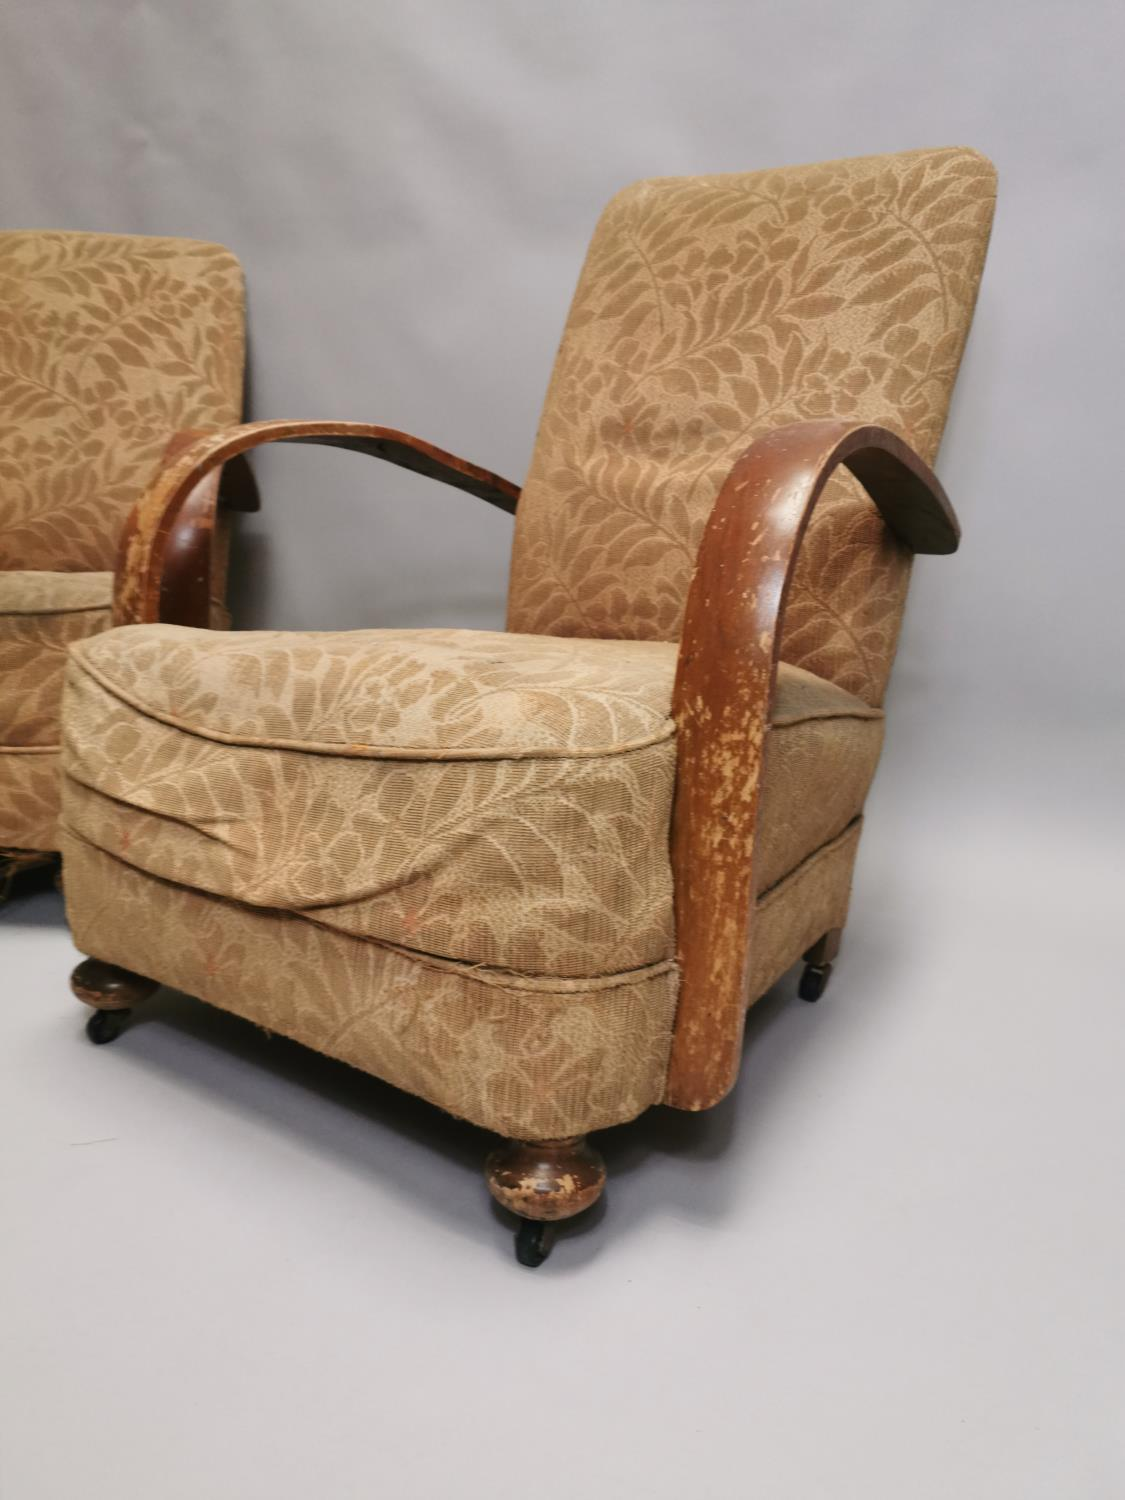 Pair of 1940's upholstered open armchairs - Image 2 of 5